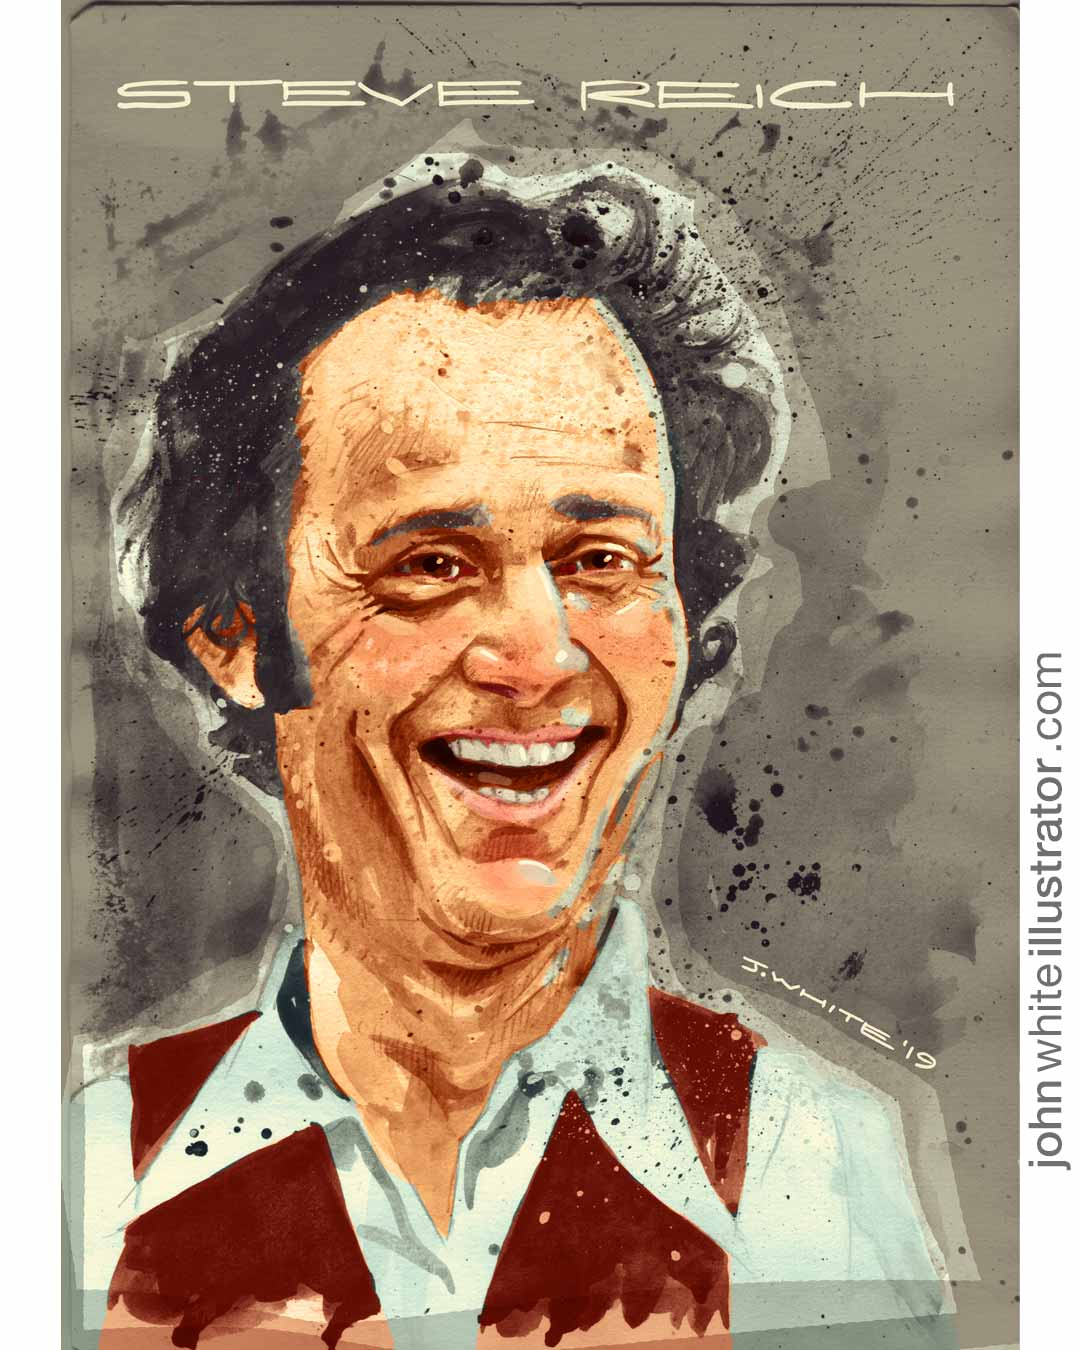 Illustration portrait art of composer musician Steve Reich